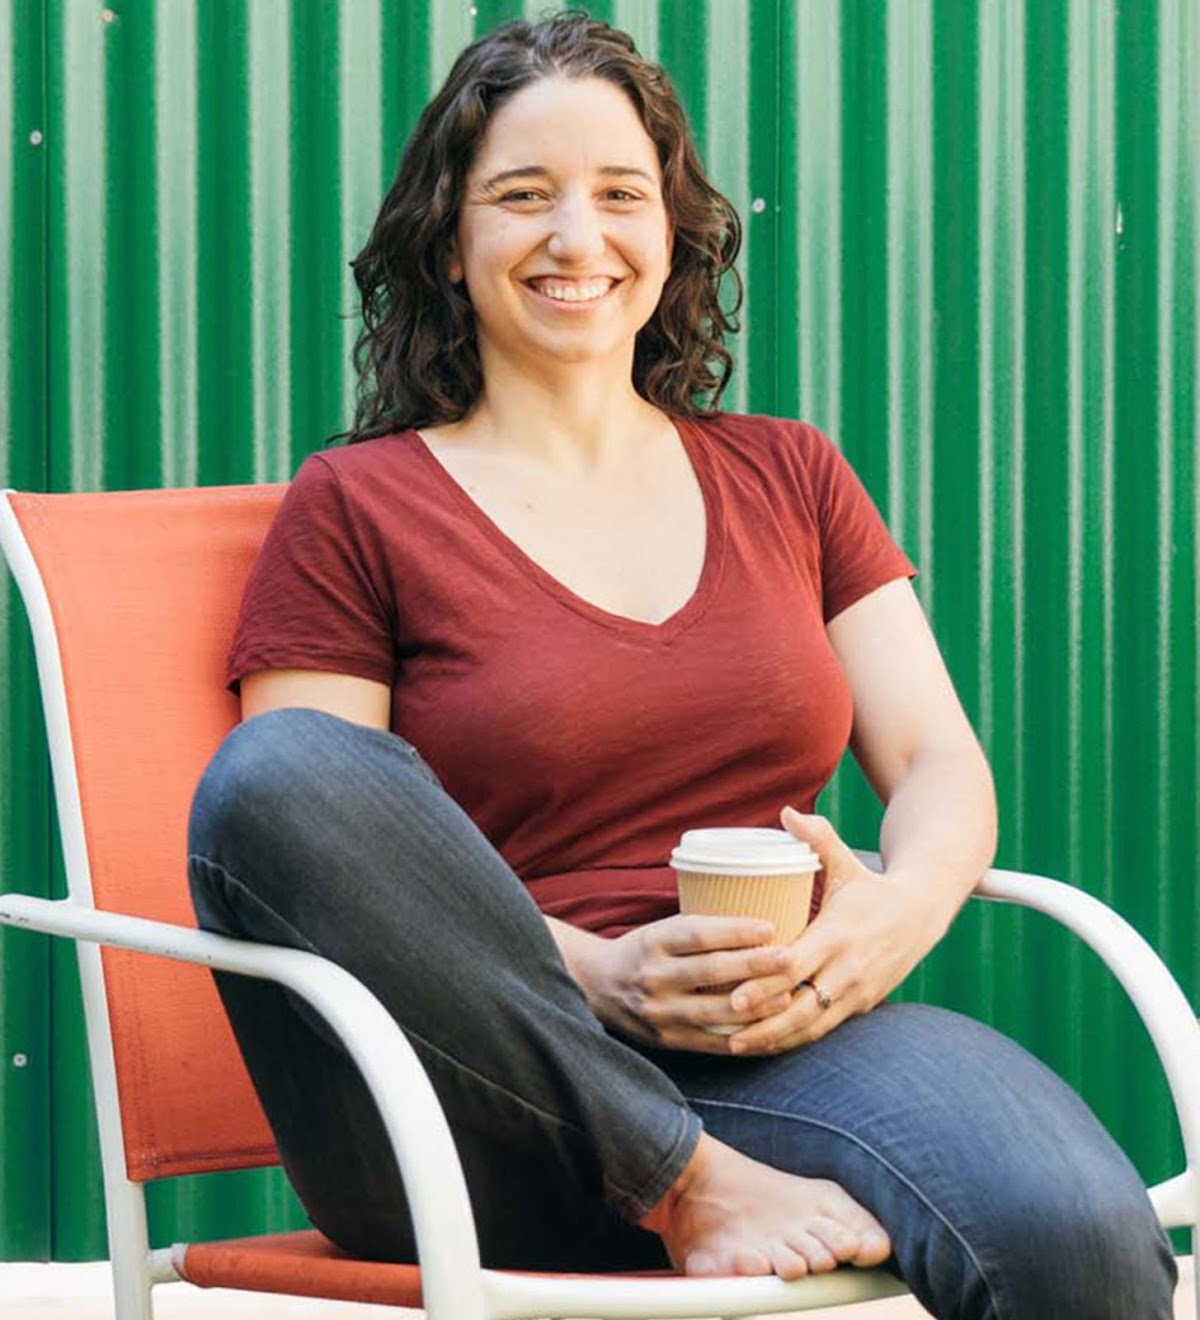 Noga Leviner, Co-Founder and CEO of PicnicHealth, smiles while sitting in a chair outdoors.